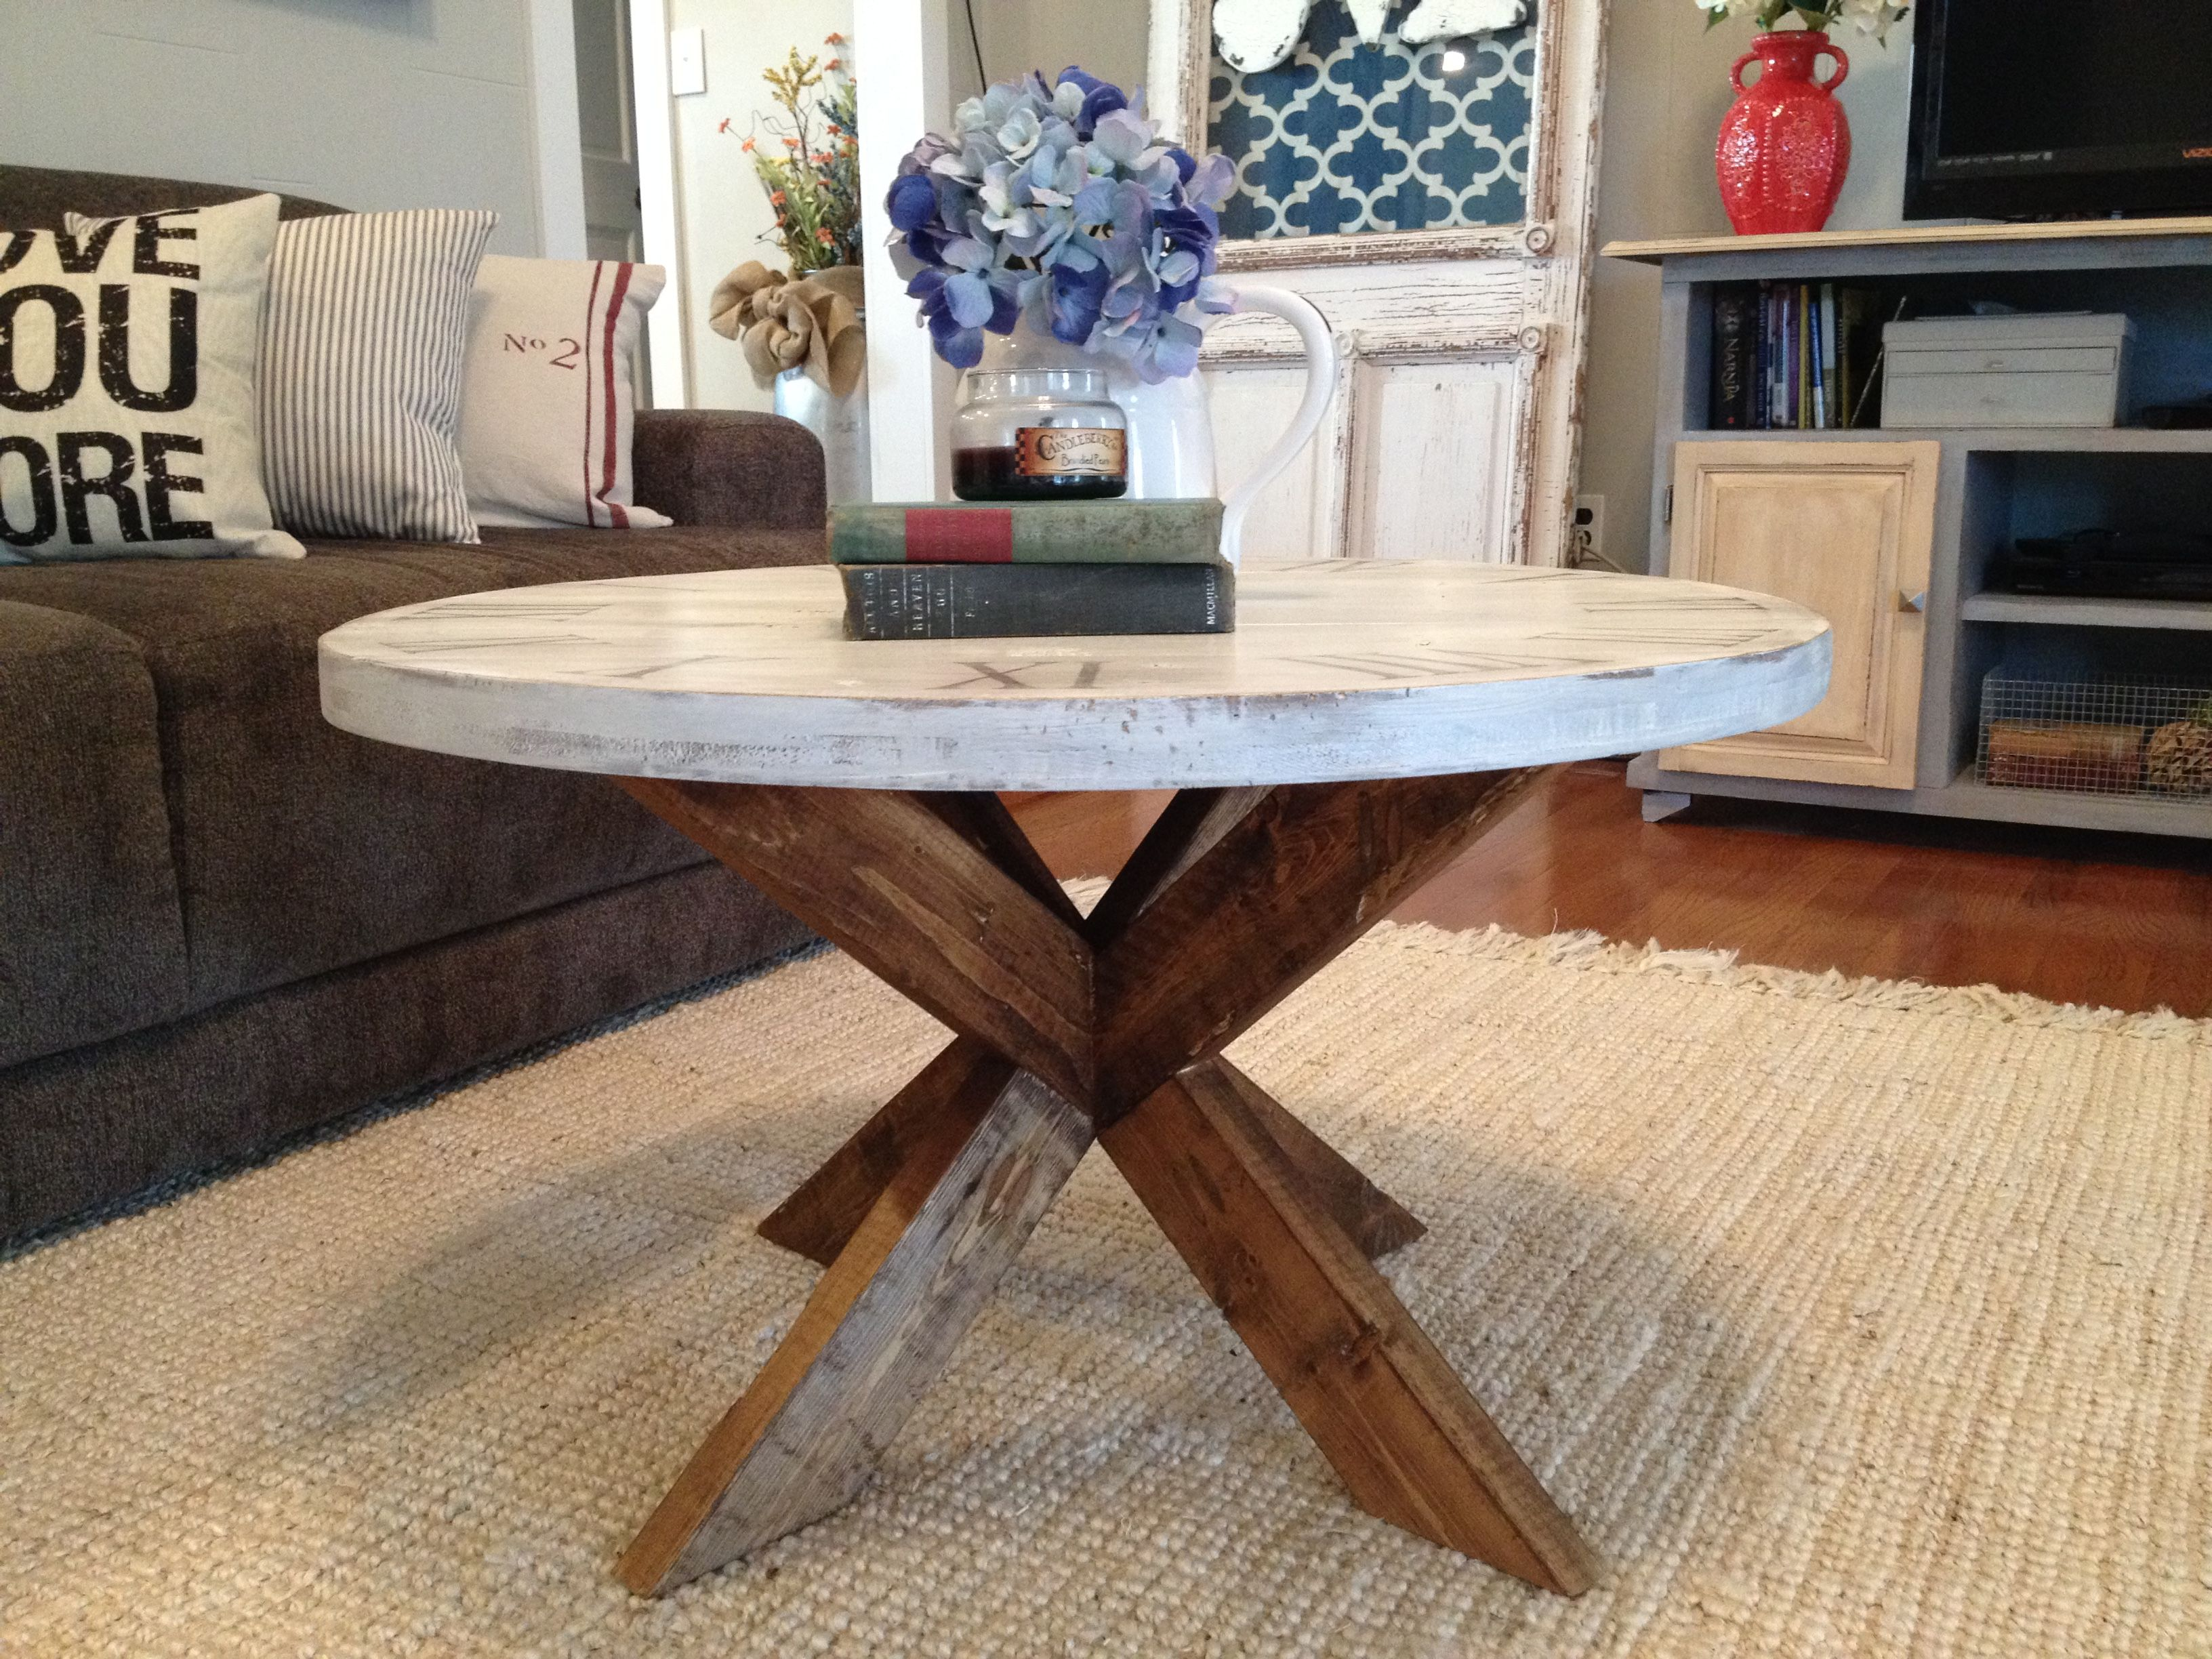 Diy Coffee Table Easy X Base Table With Round Top Round Coffee Table Diy Diy Coffee Table Coffee Table Design [ 2448 x 3264 Pixel ]